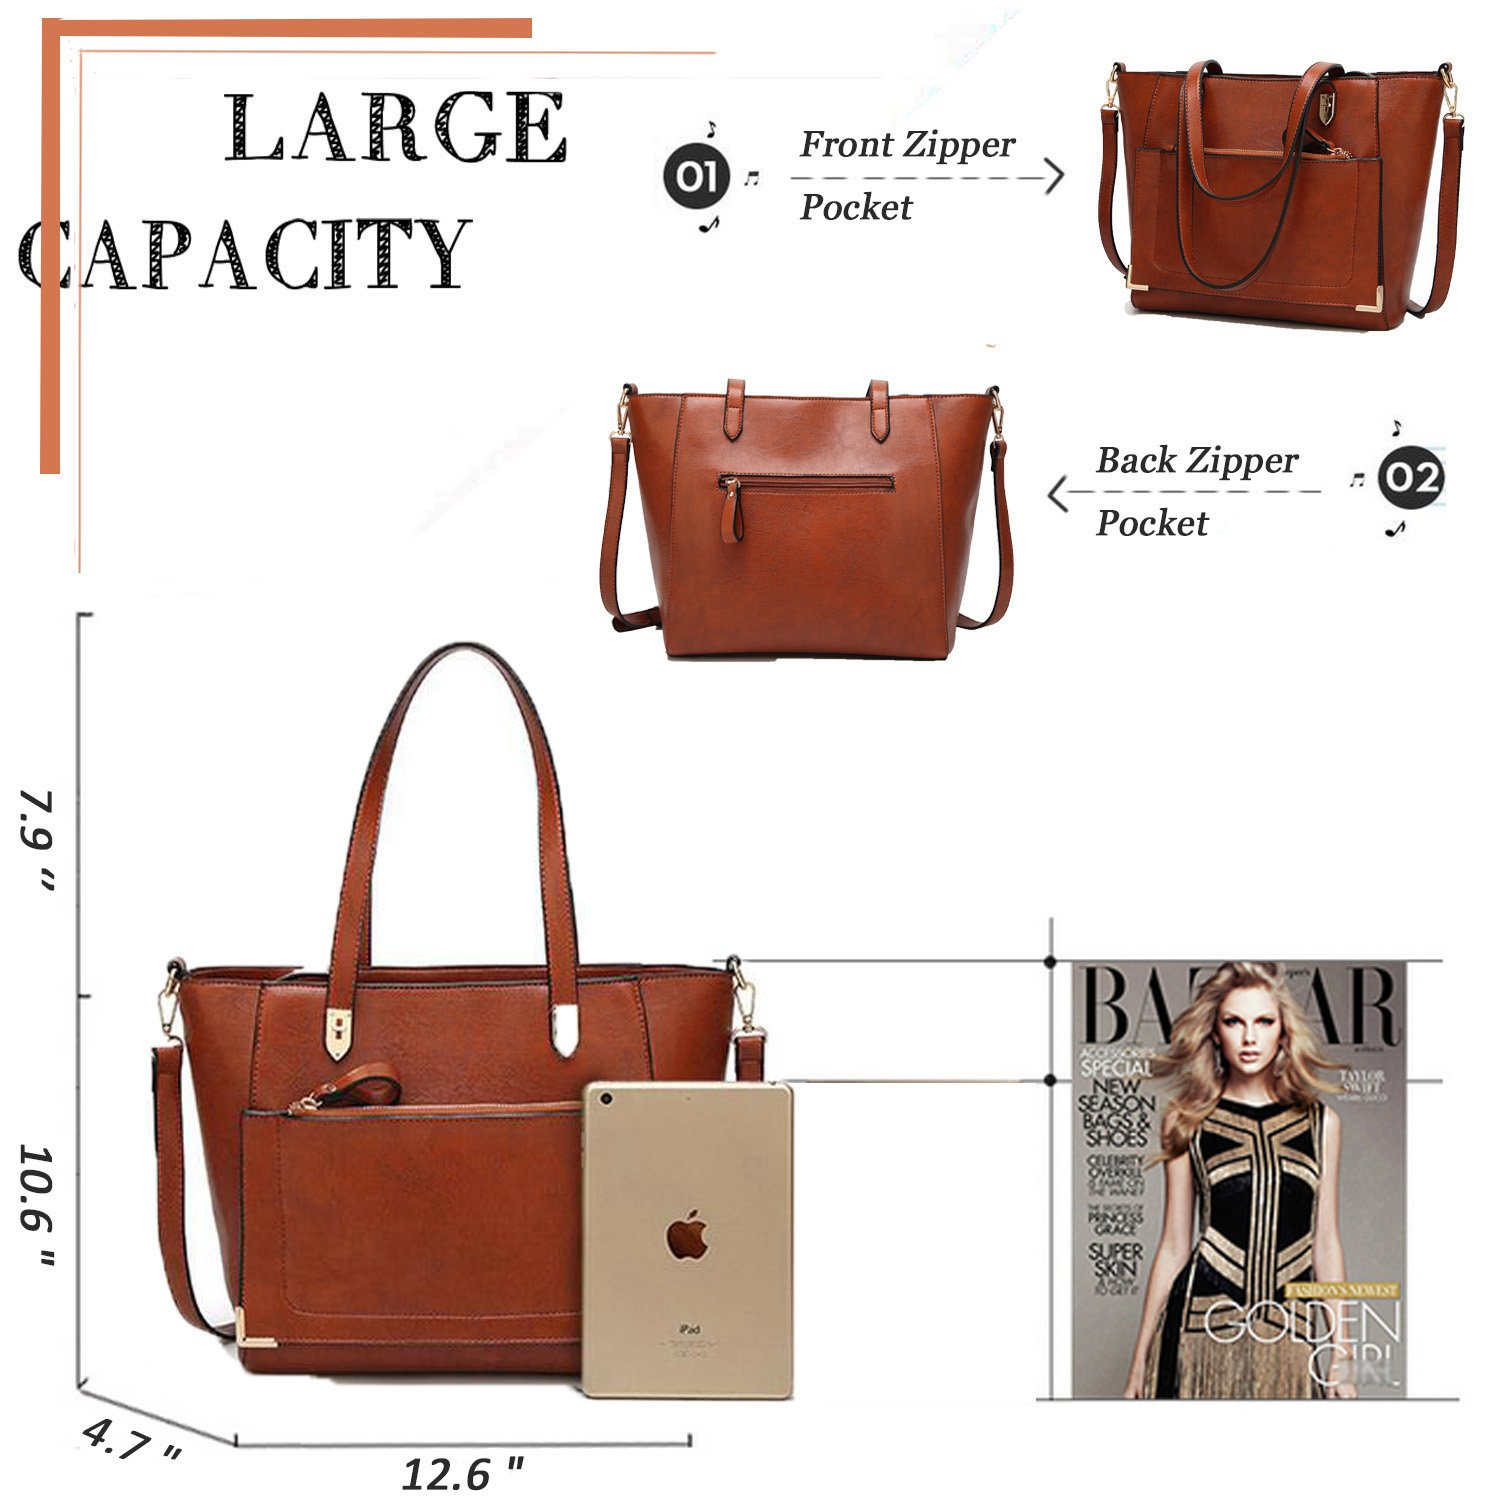 YNIQUE Women Top Handle Handbags Satchel Purse Tote Bag Shoulder Bag, Brown, Medium by YNIQUE (Image #6)